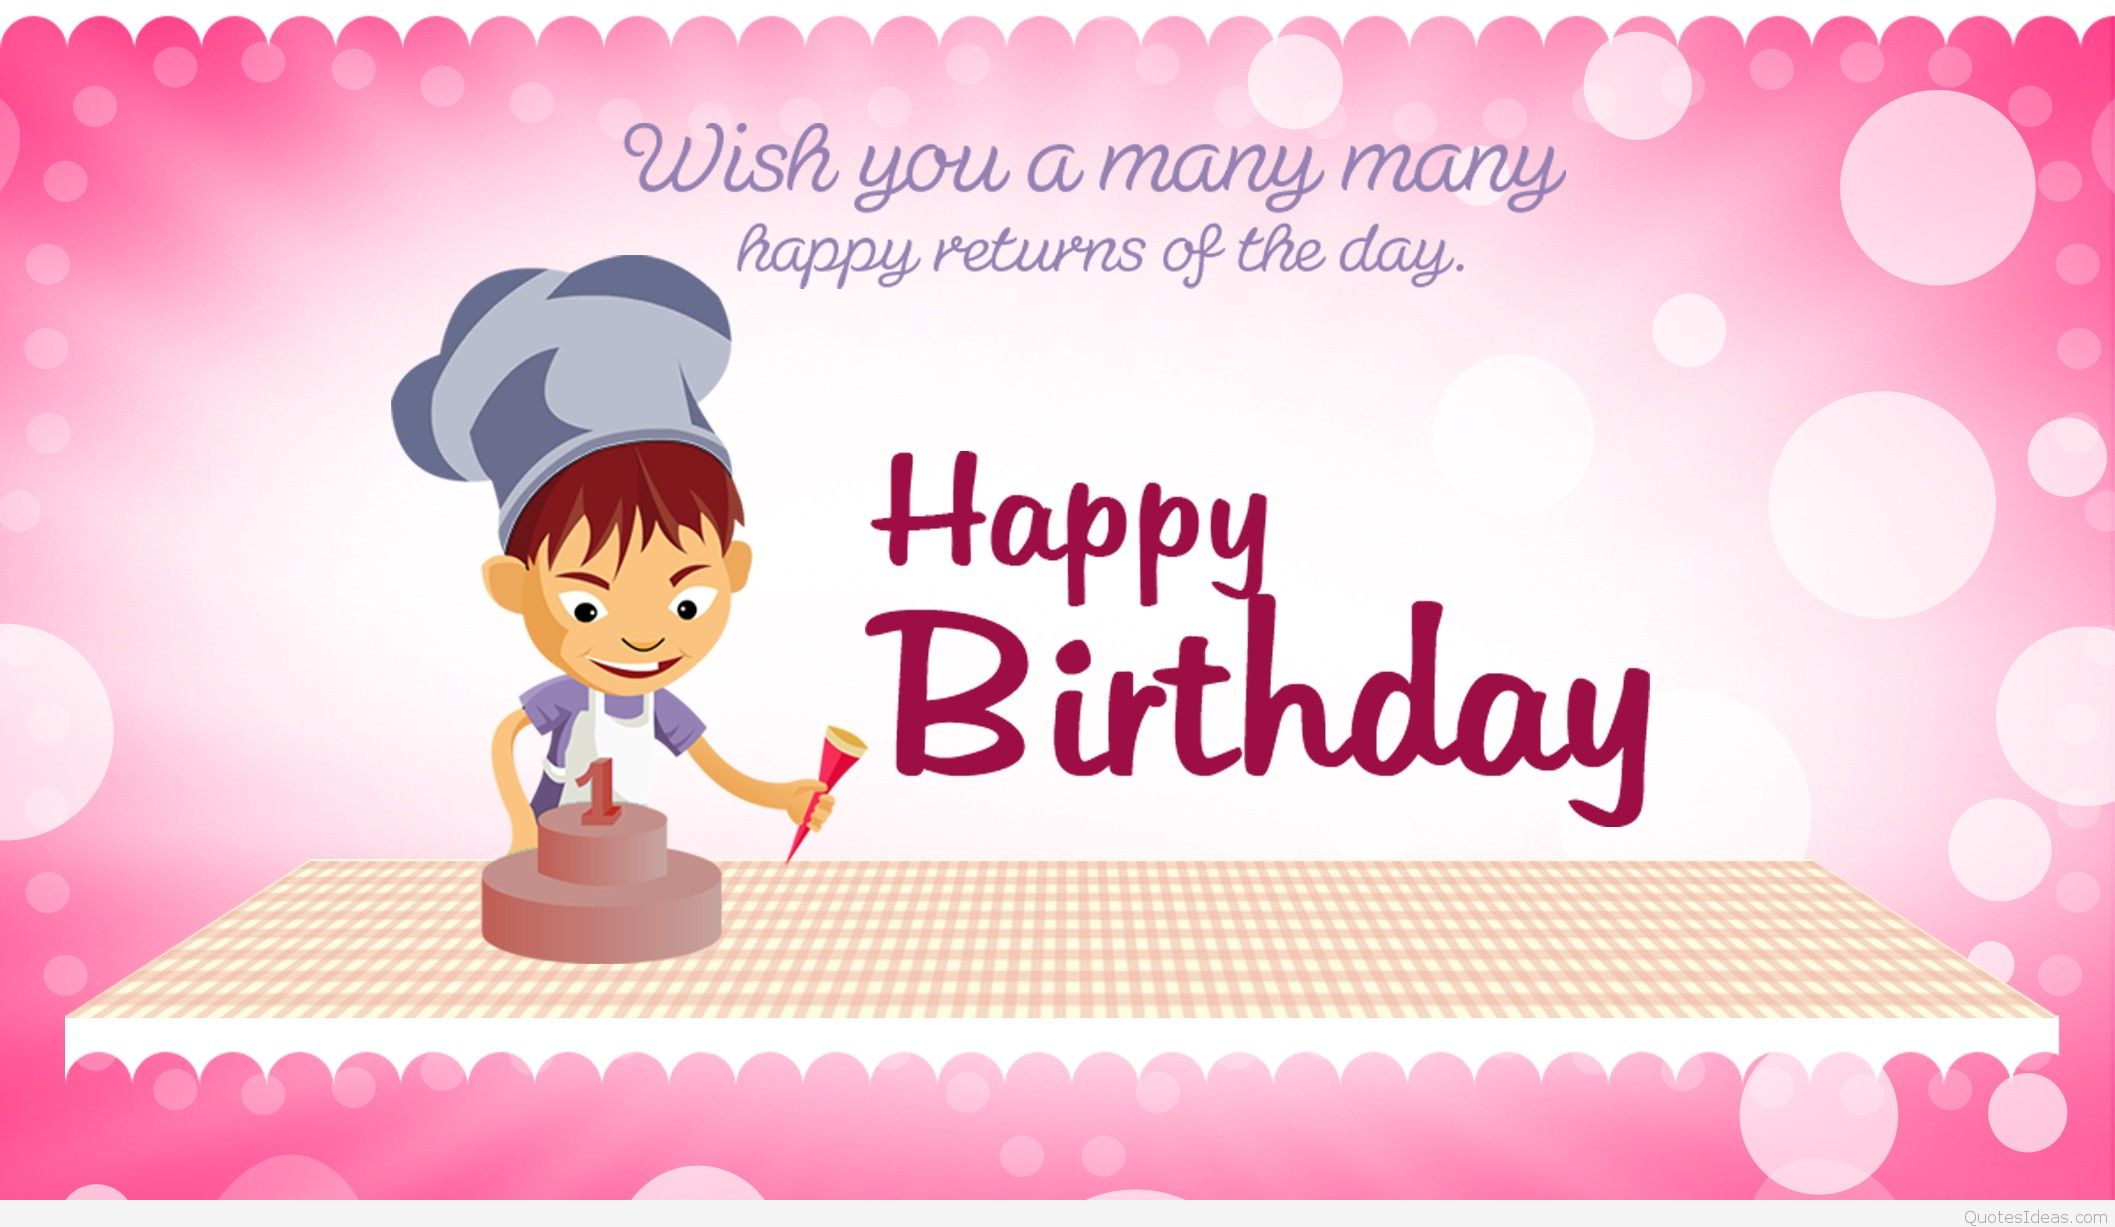 birthday card greetings for kids ; birthday-invitations-card-birthday-wish-for-a-friend-images-50th-wishes-gt-happy-inspirational-message-in-hindi-wishe-you-very-download-kids-cards-cool-birthday-wishes-to-a-friend